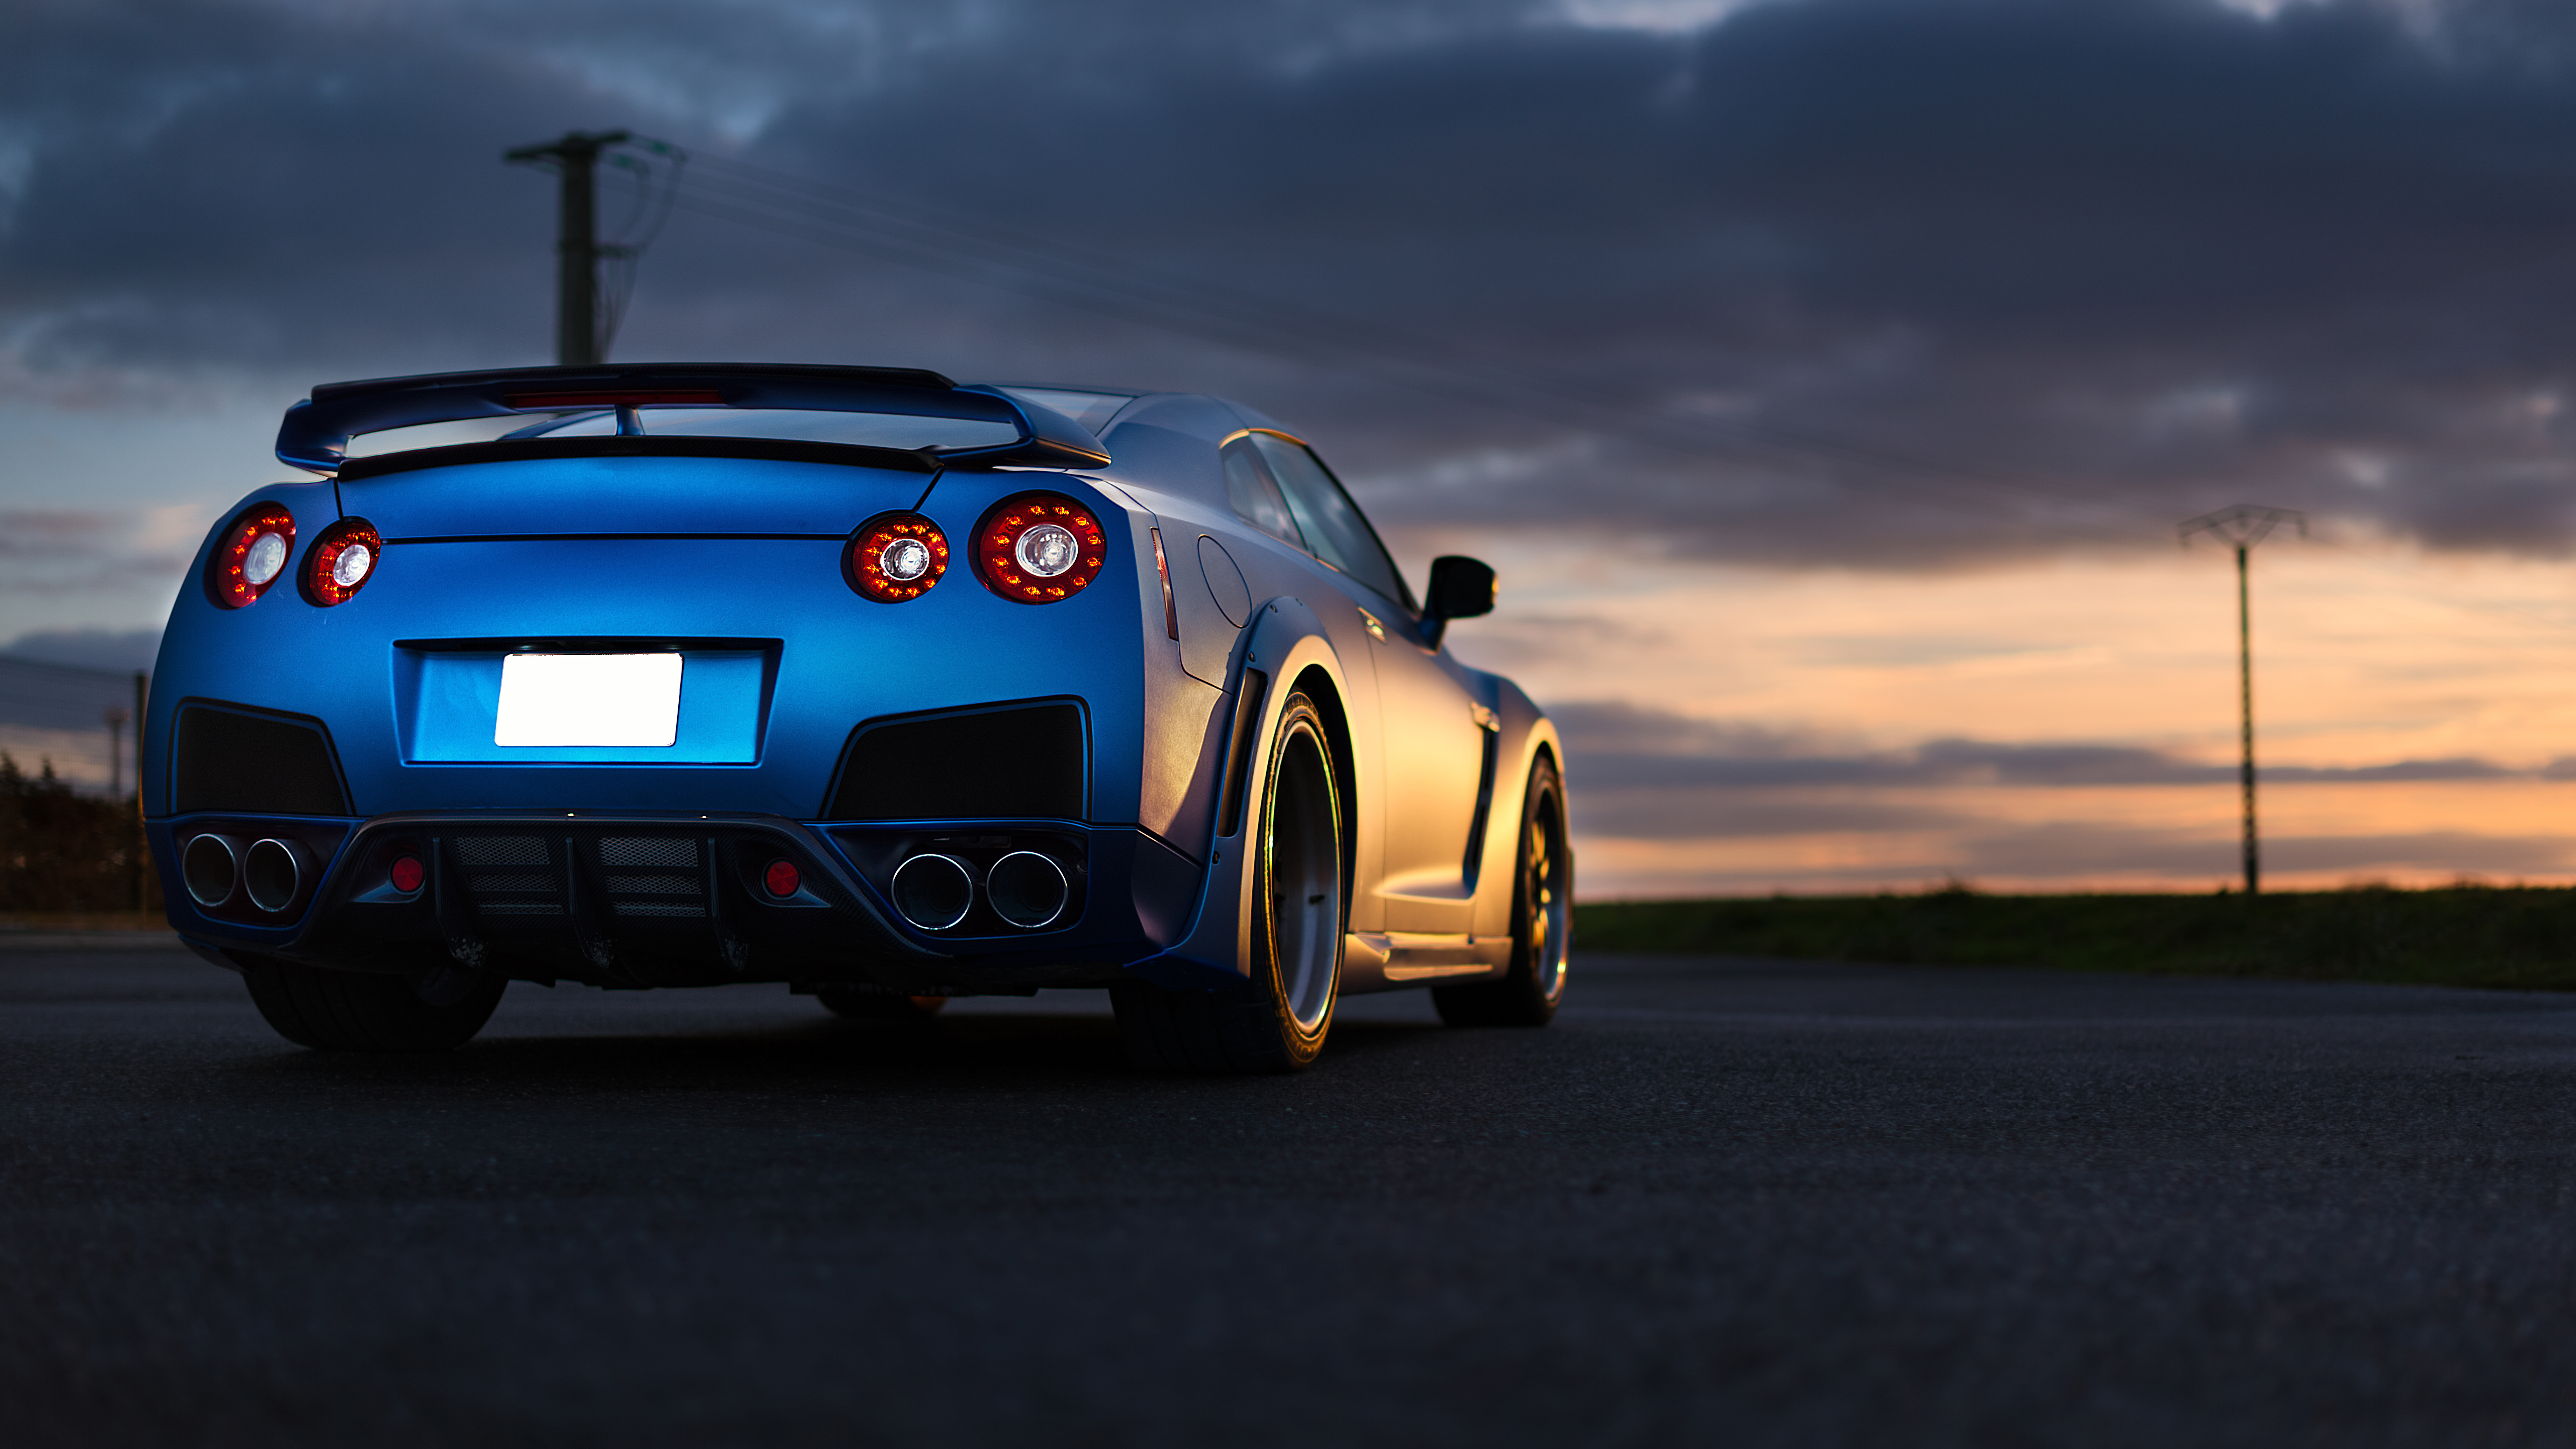 Nissan GTR 8k, HD Cars, 4k Wallpapers, Images, Backgrounds ...